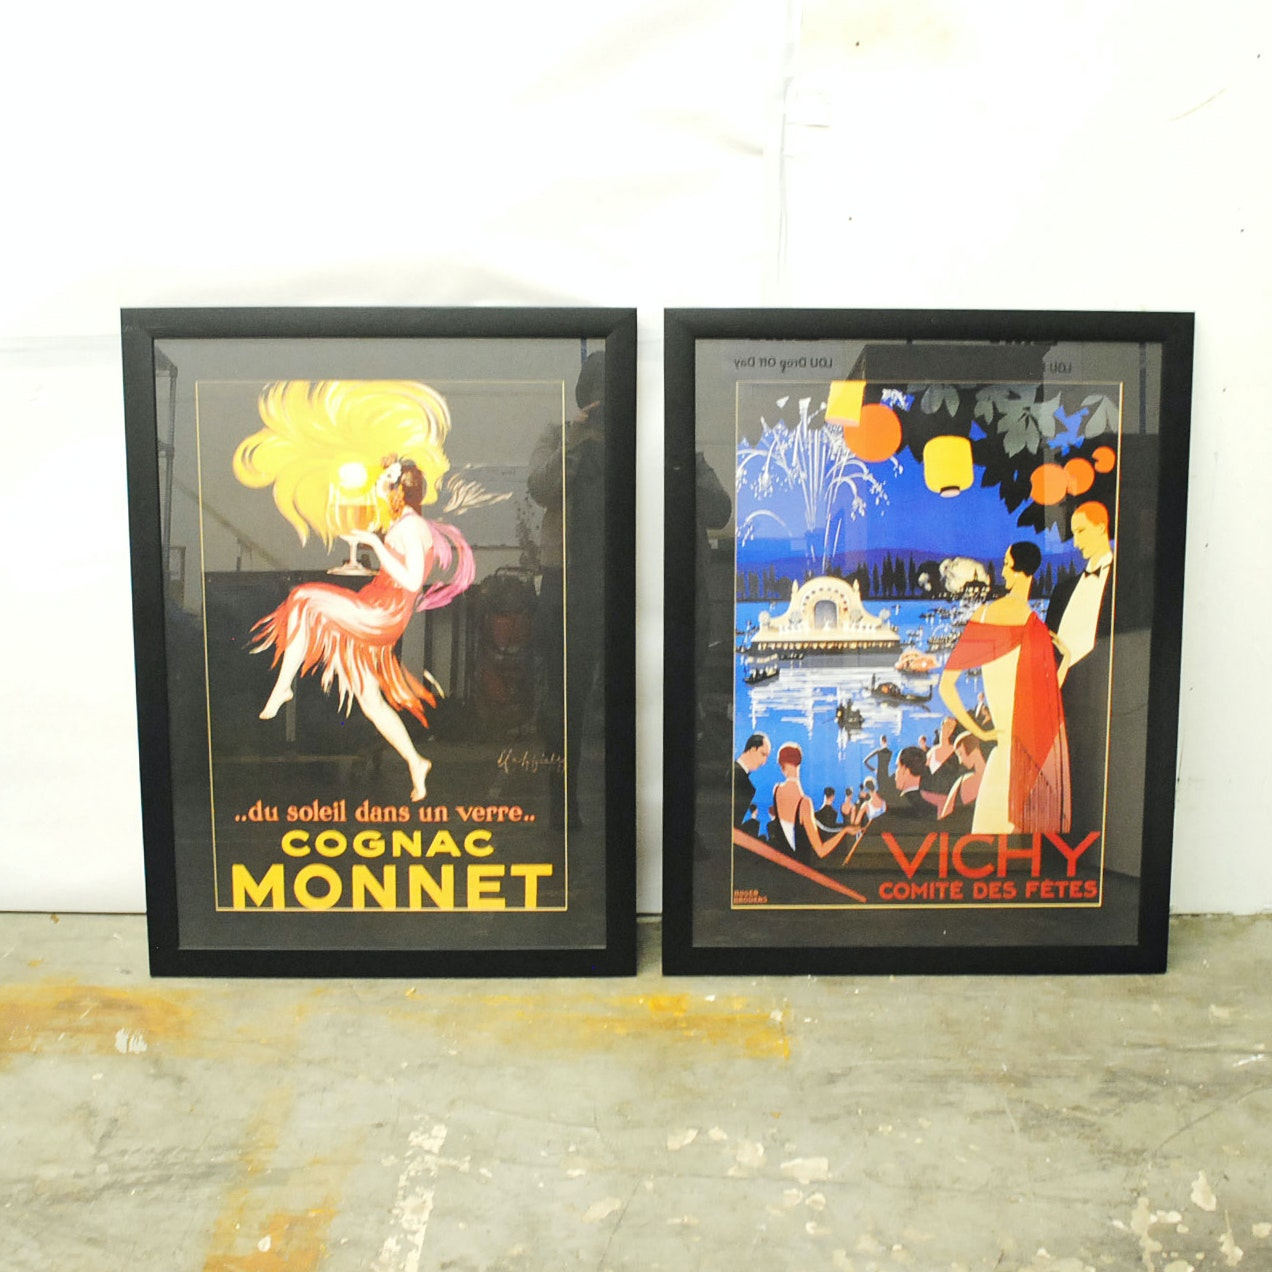 Offset Lithographic Reproductions after Leonetto Cappiello and Roger Broders